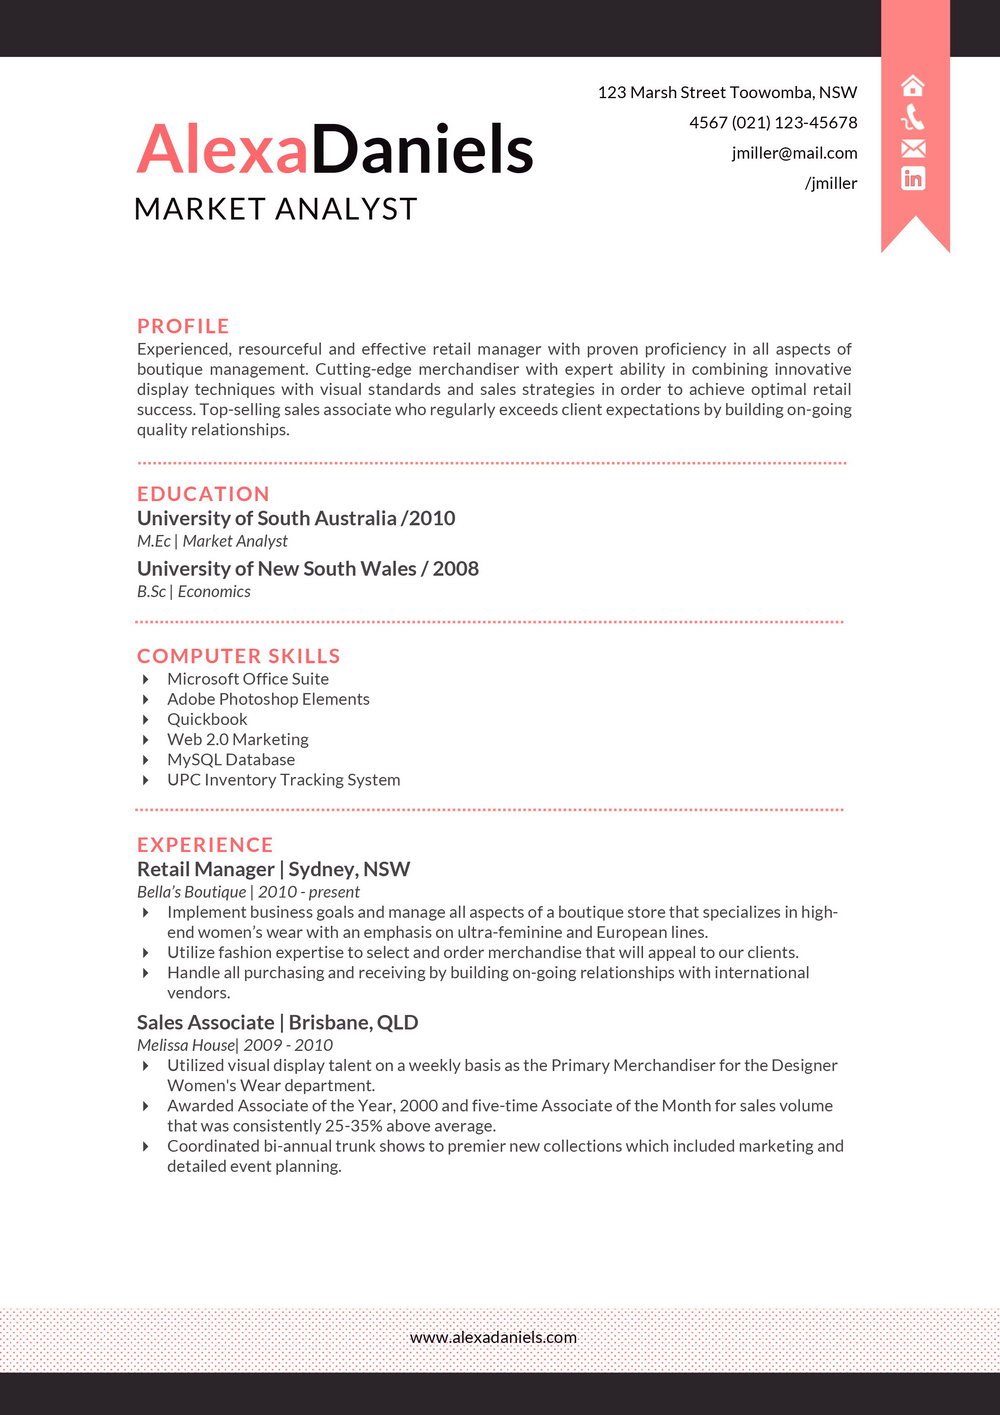 Resume Format Free Download In Ms Word For Freshers